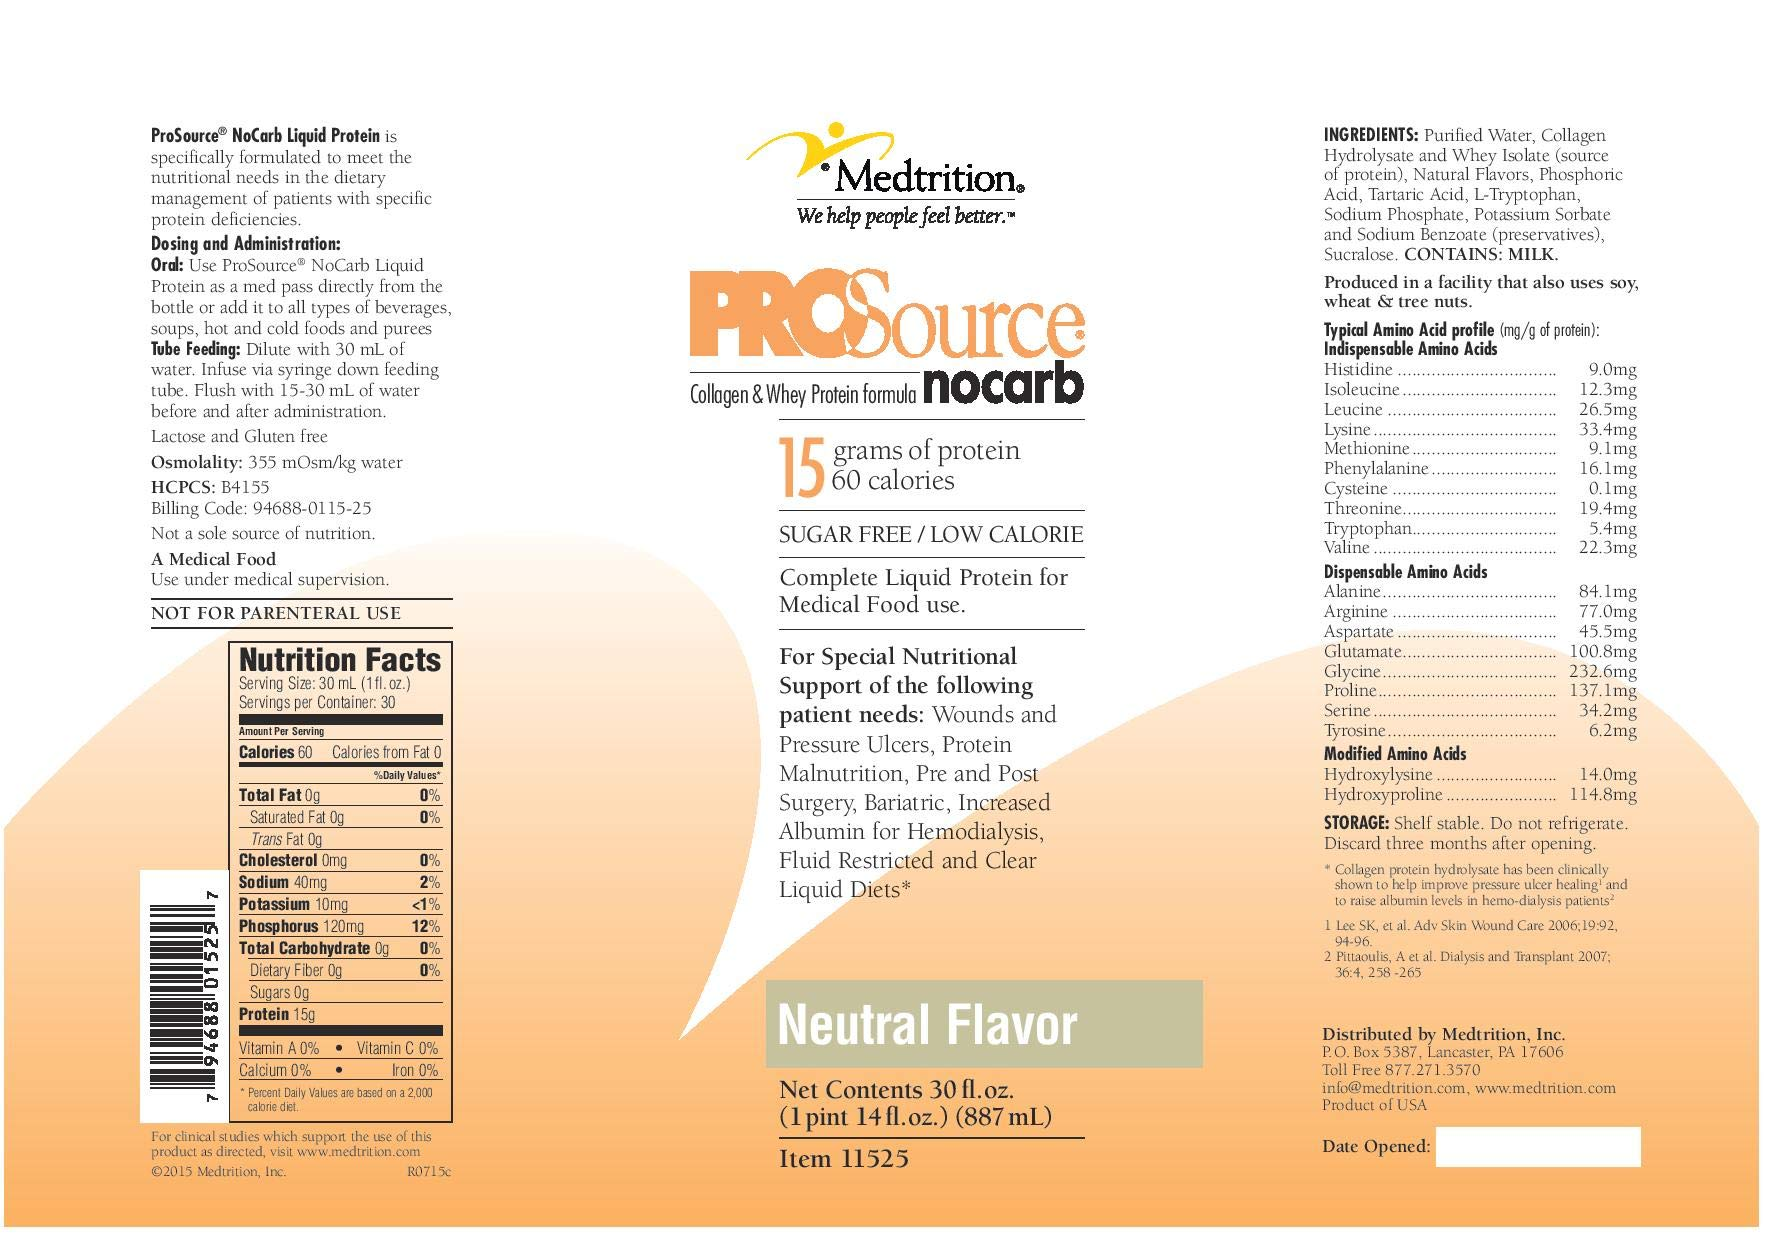 ProSource NoCarb Liquid Protein, Neutral Flavor, 30 Ounce Bottle - 1/Each by National Nutrition